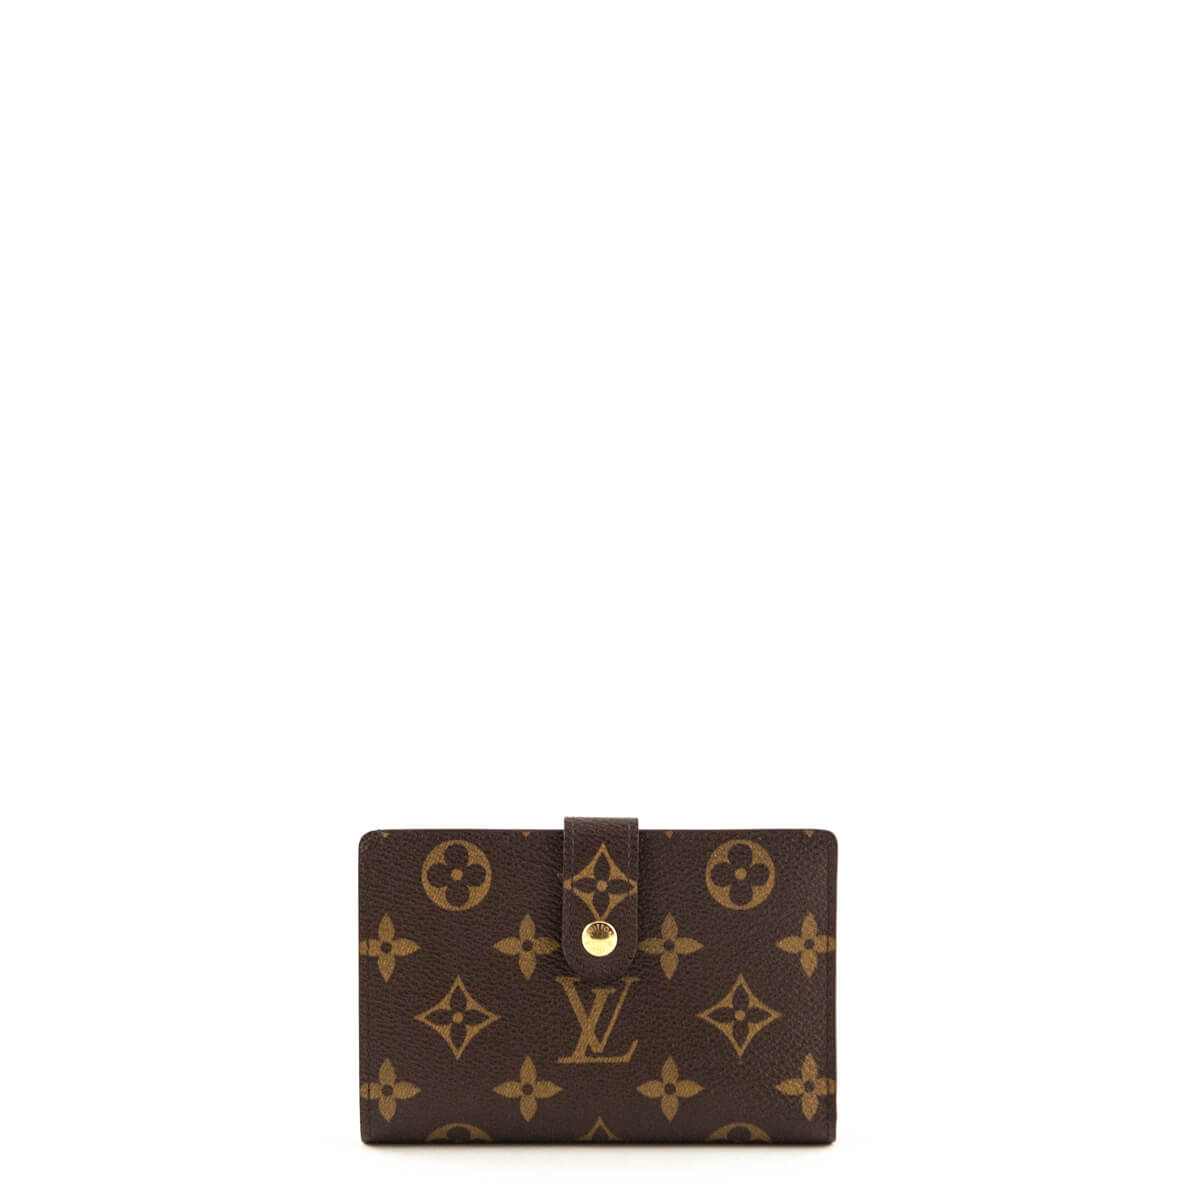 8eaa69323aaa Louis Vuitton Monogram French Purse Wallet - LOVE that BAG - Preowned  Authentic Designer Handbags ...